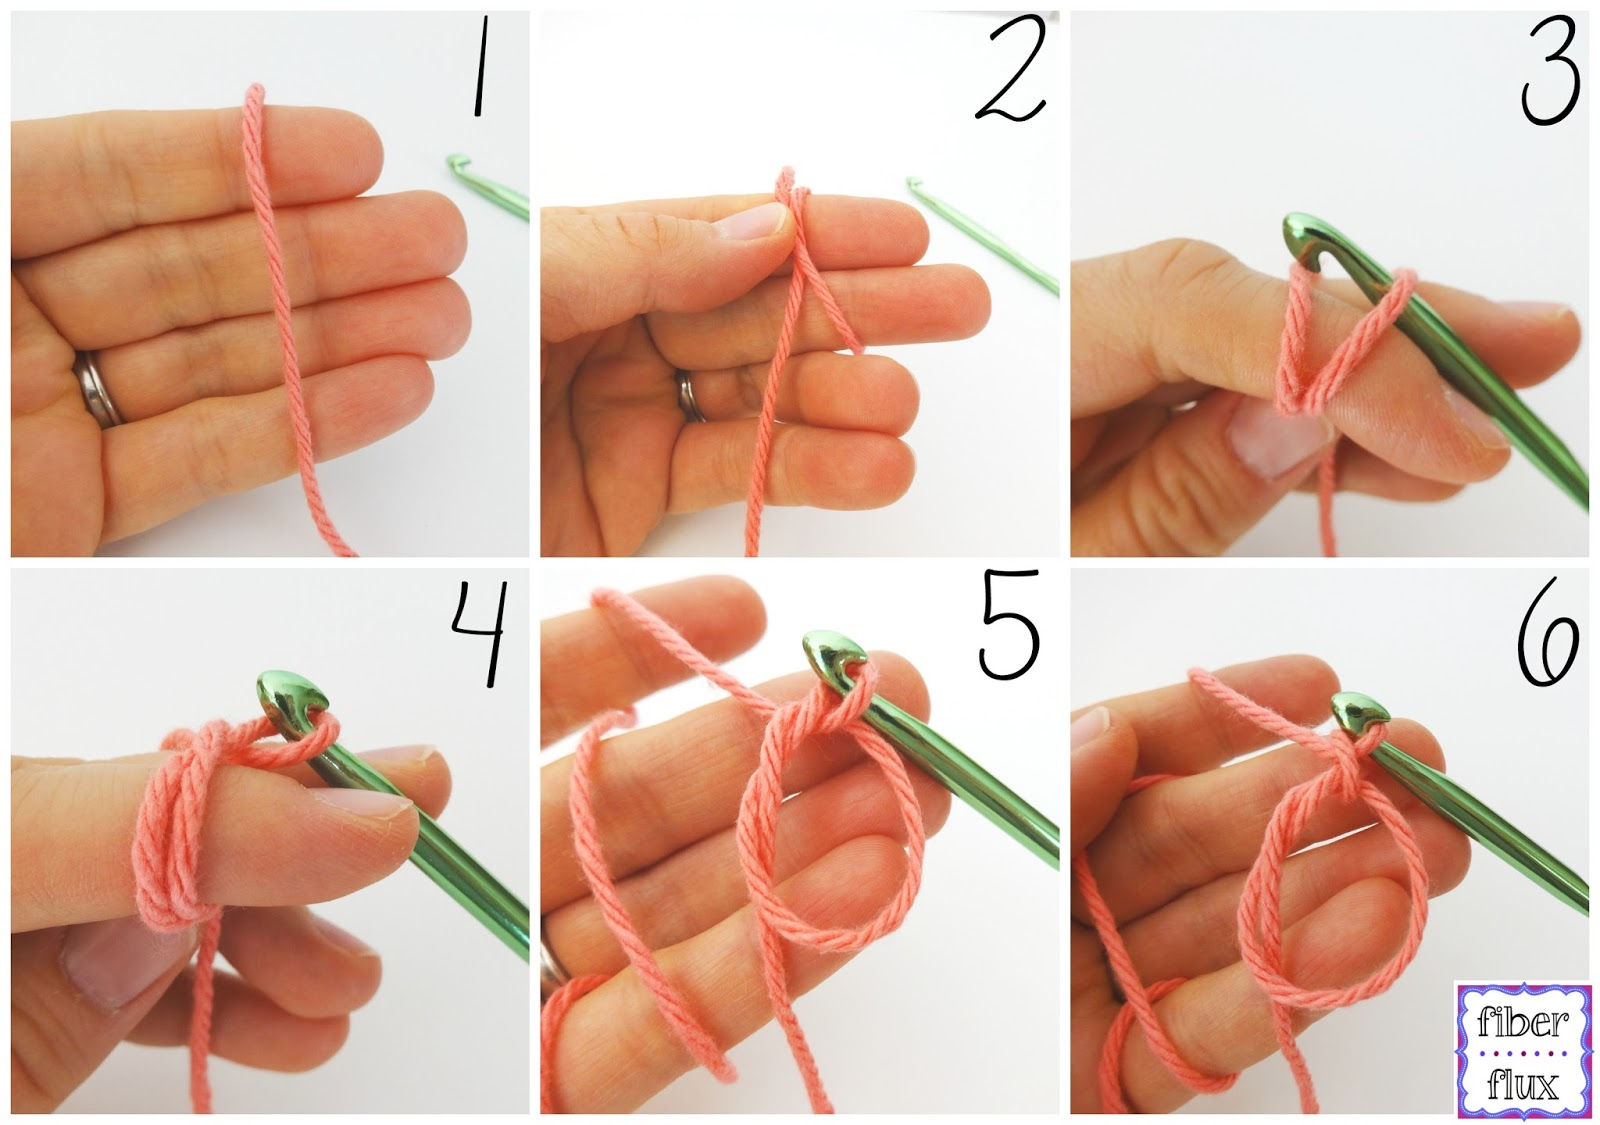 Crochet Magic Loop : Fiber Flux: How to Crochet the Magic Ring/Magic Circle (Photo + Video ...